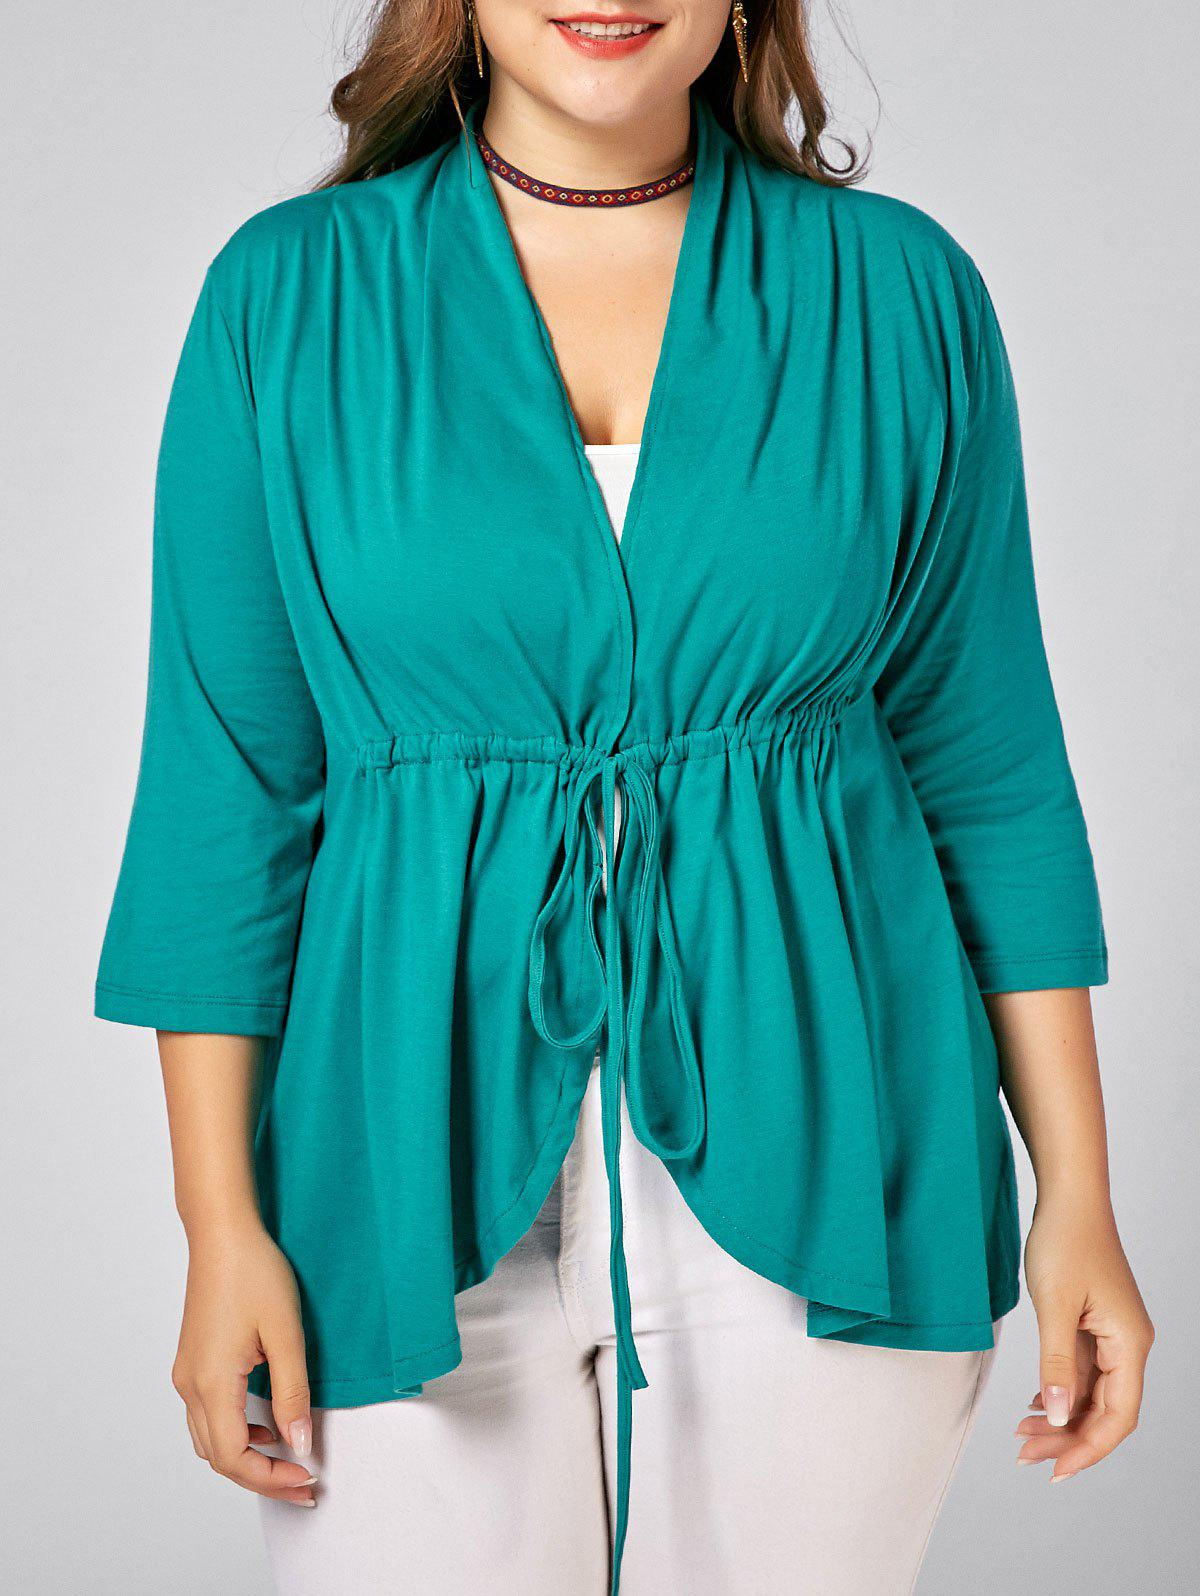 Drawstring Plus Size V Neck Peplum Top - PEACOCK BLUE 2XL